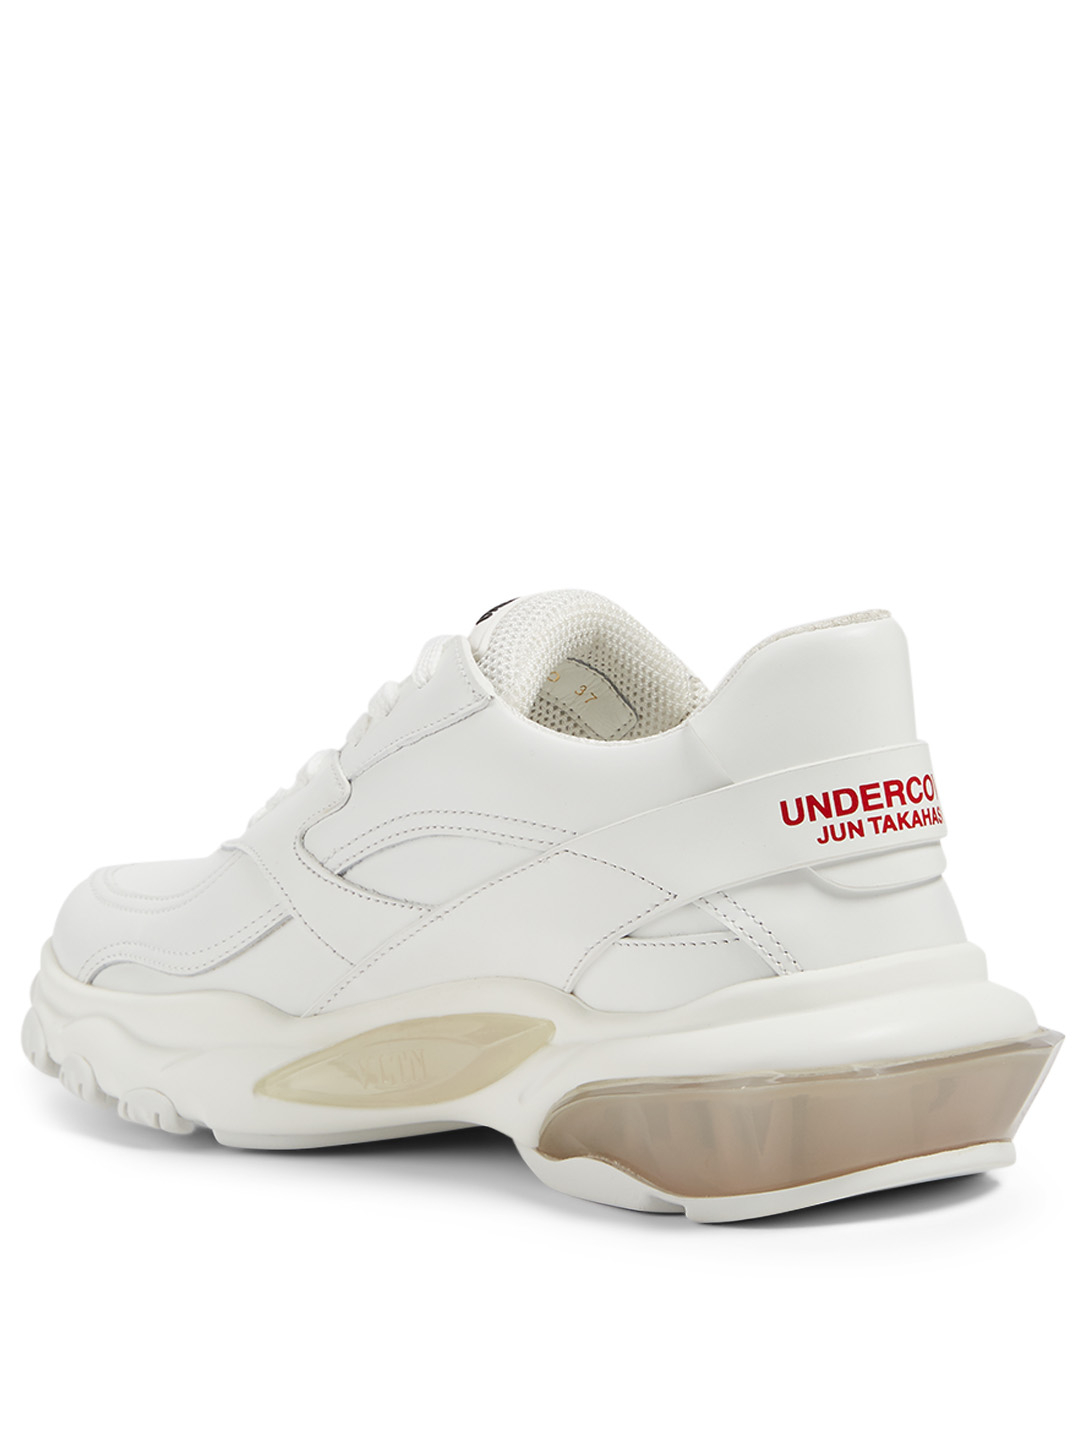 VALENTINO GARAVANI Undercover Bounce Leather Sneakers With Rose Print Women's White